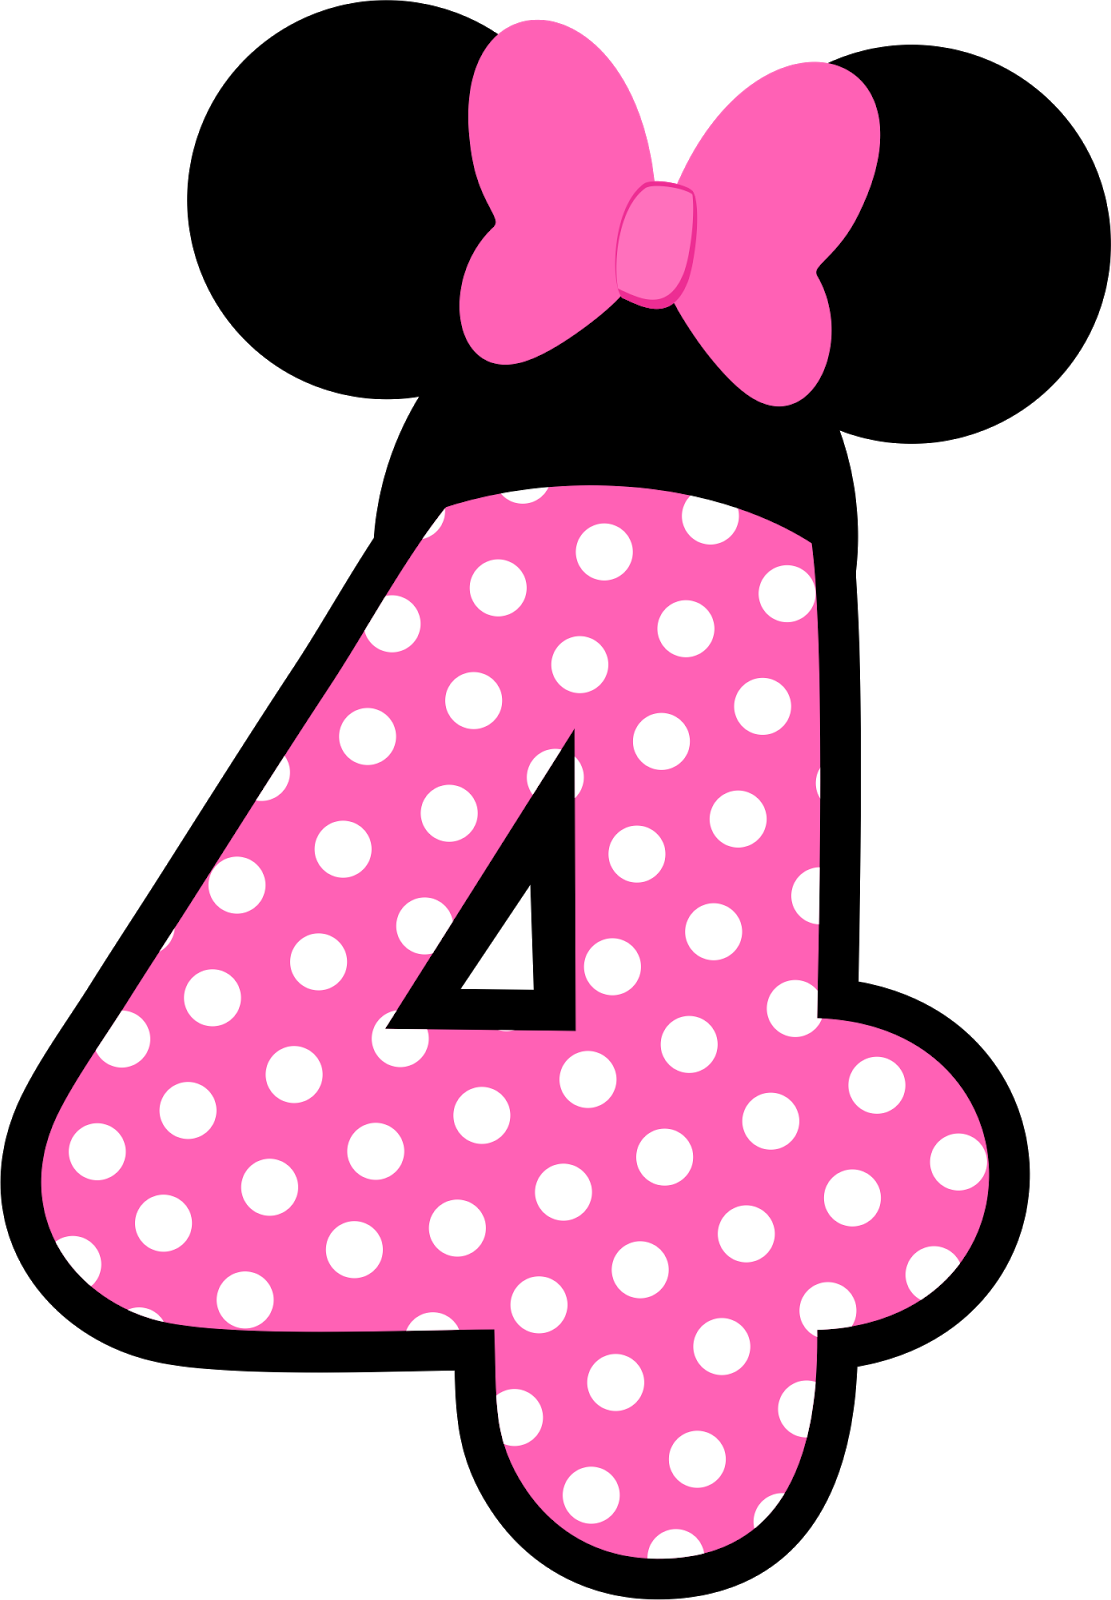 Minnie mouse background polka dots png. Passatempo da ana n